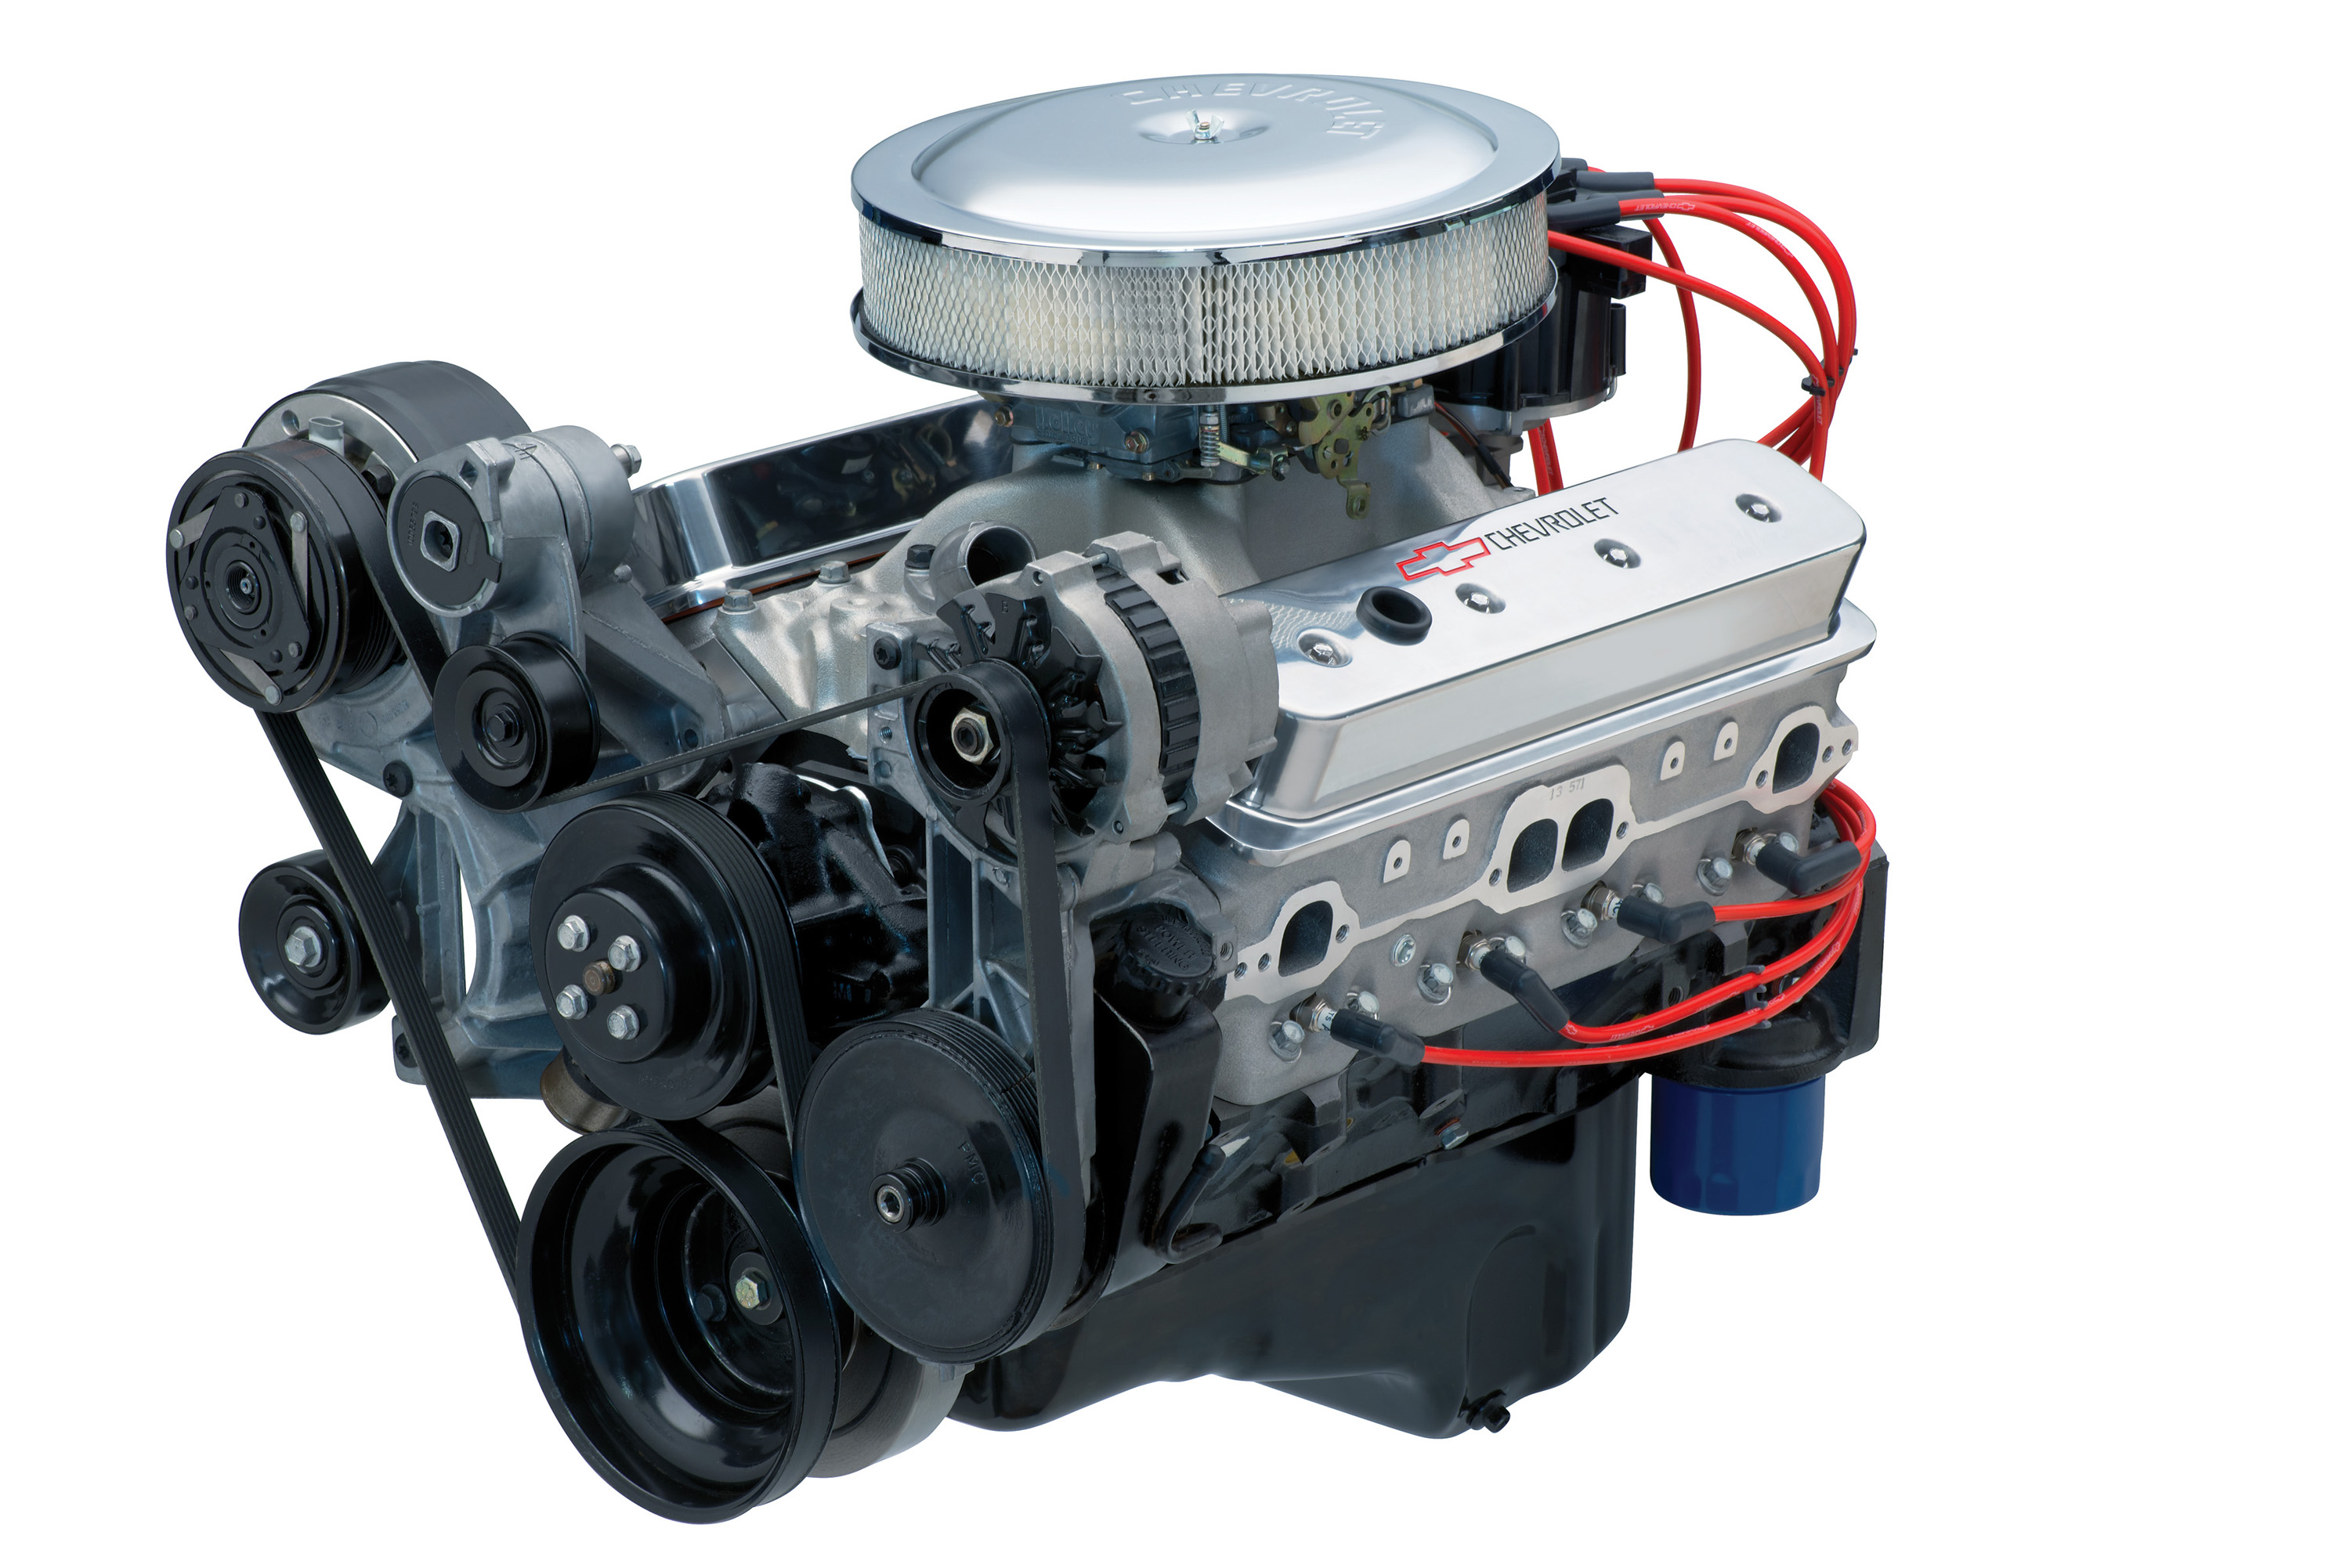 Chevrolet Performance Introduces New ZZ5 350 Crate Engine